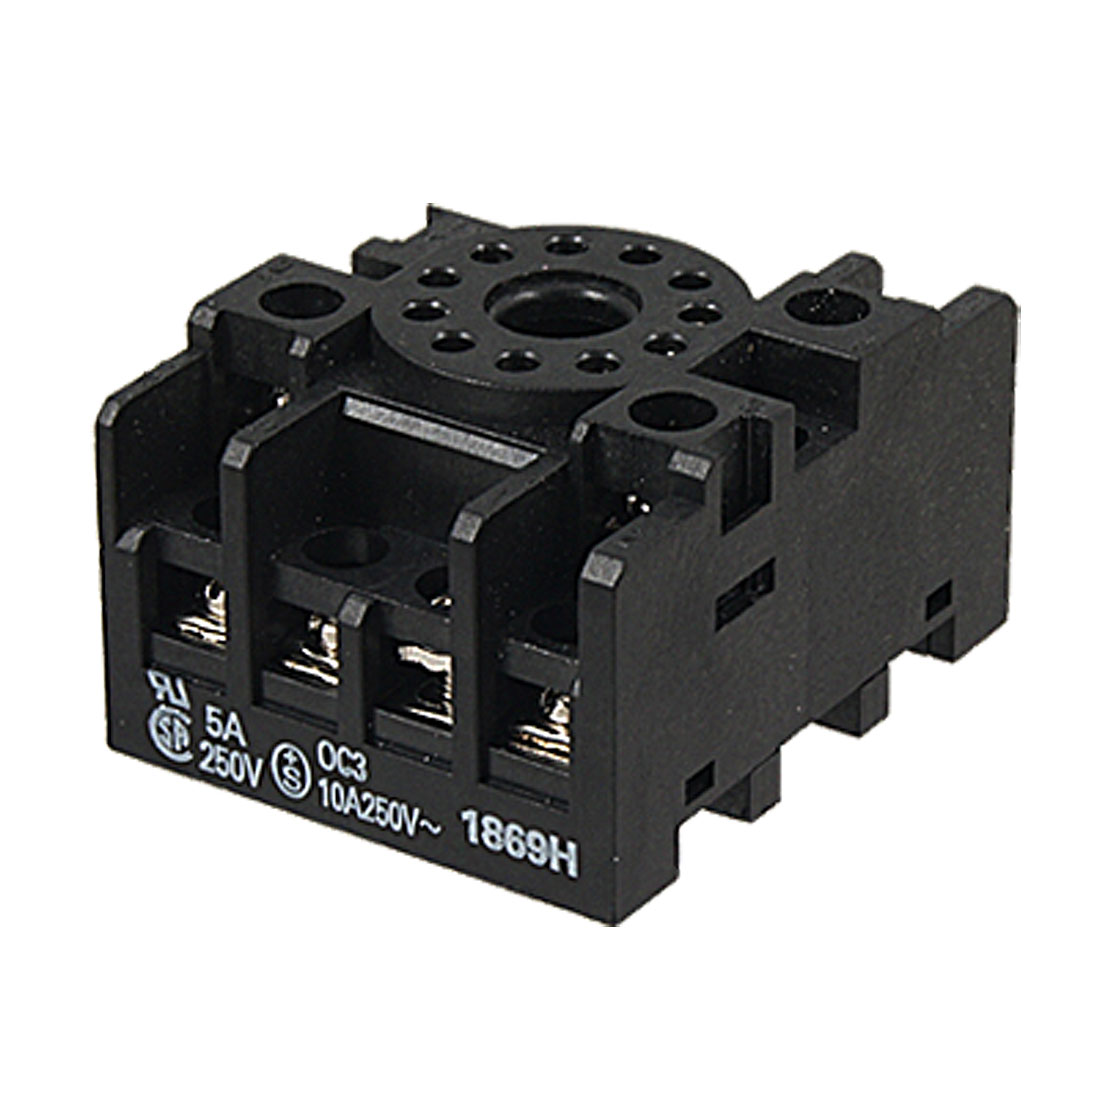 PF113A-E AC 250V 5A Round 11 Pin Power Relay Socket Base